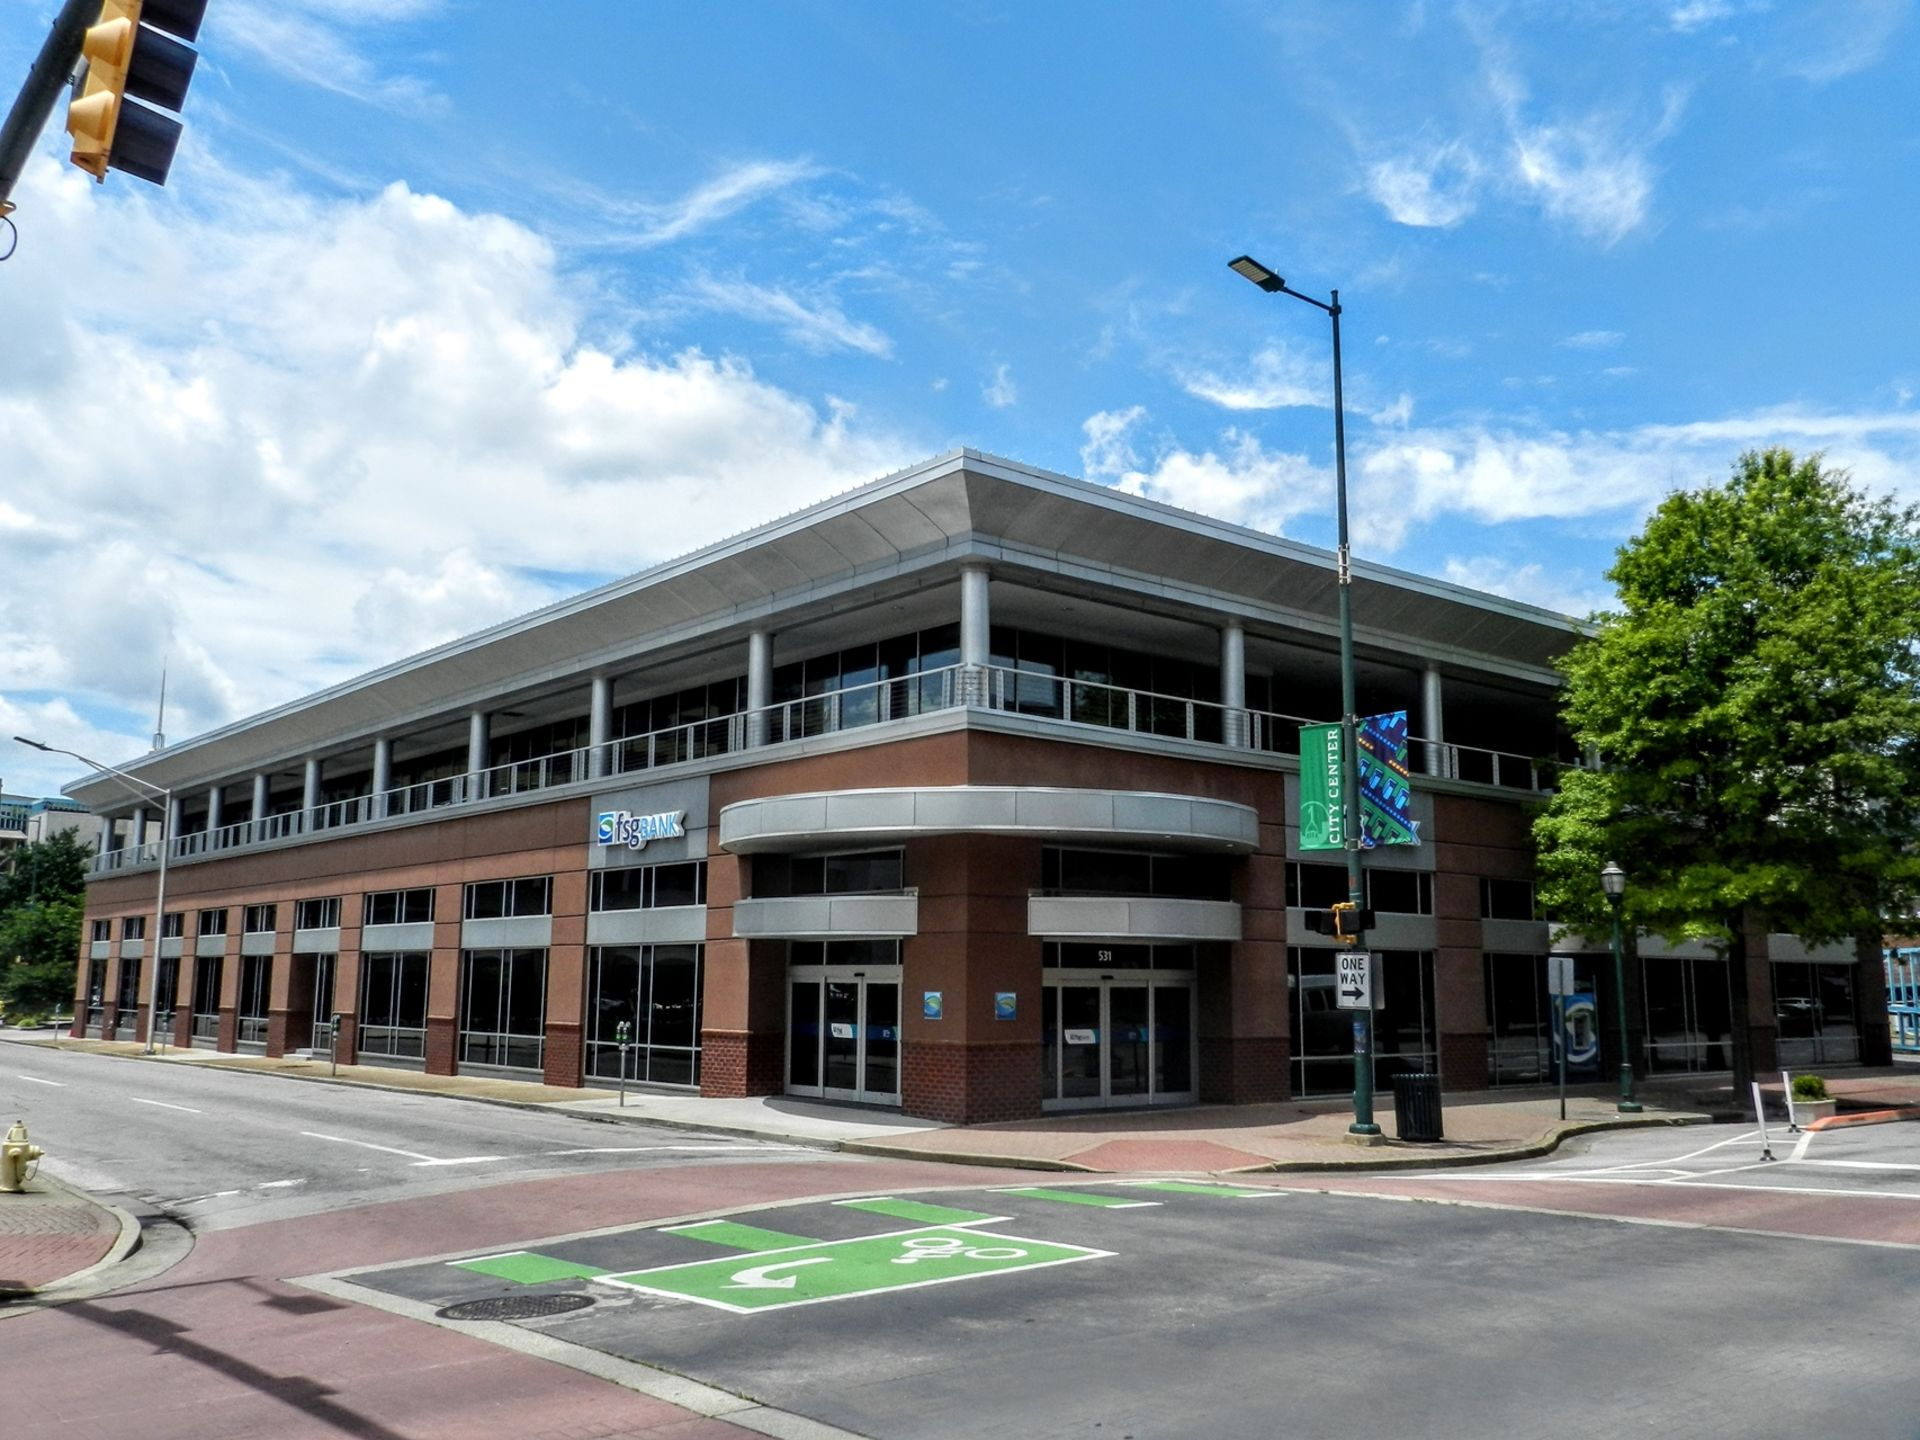 Sale of Multimillion Dollar Office Building Adds Value to Downtown